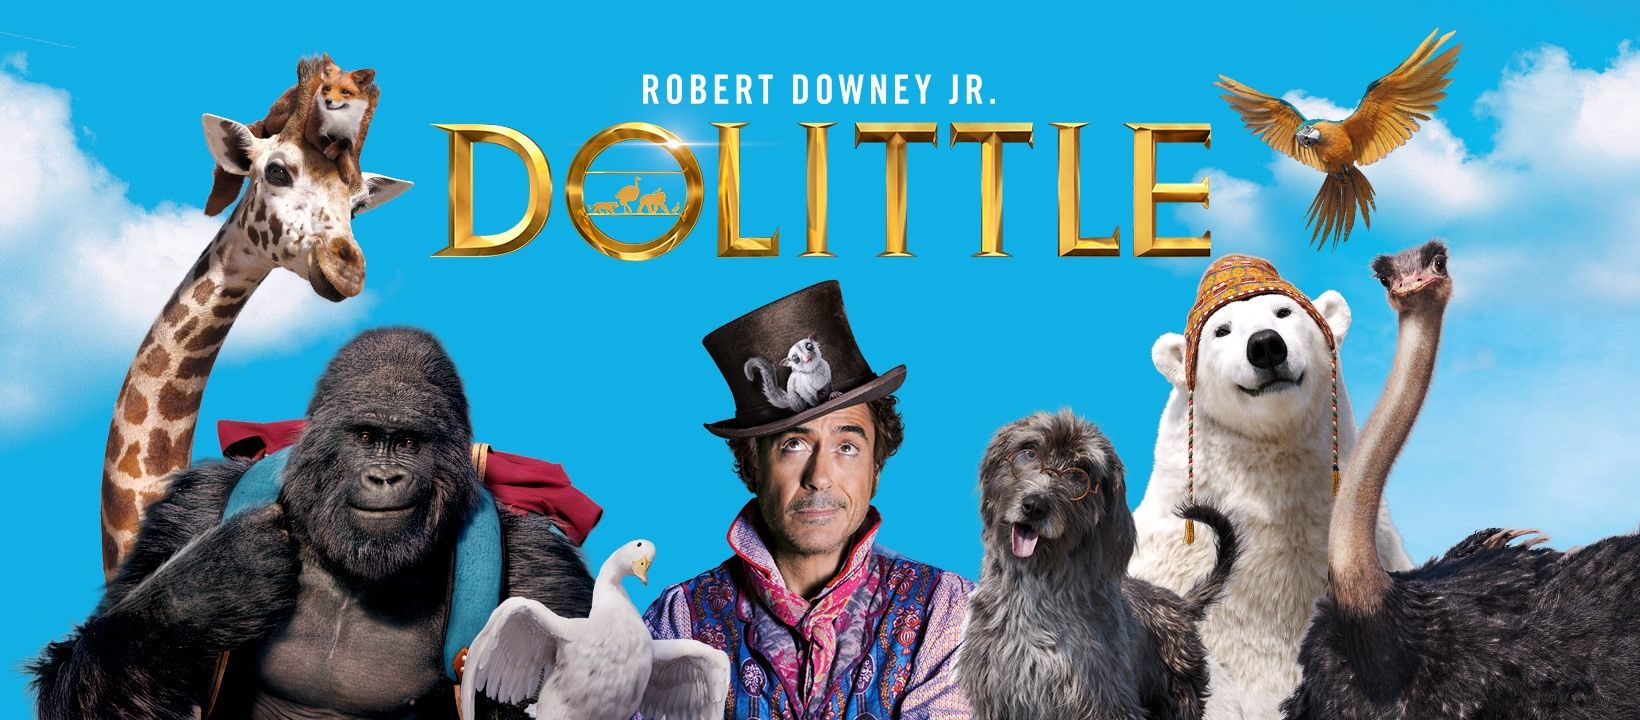 Dolittle My quick read movie review and rating have been